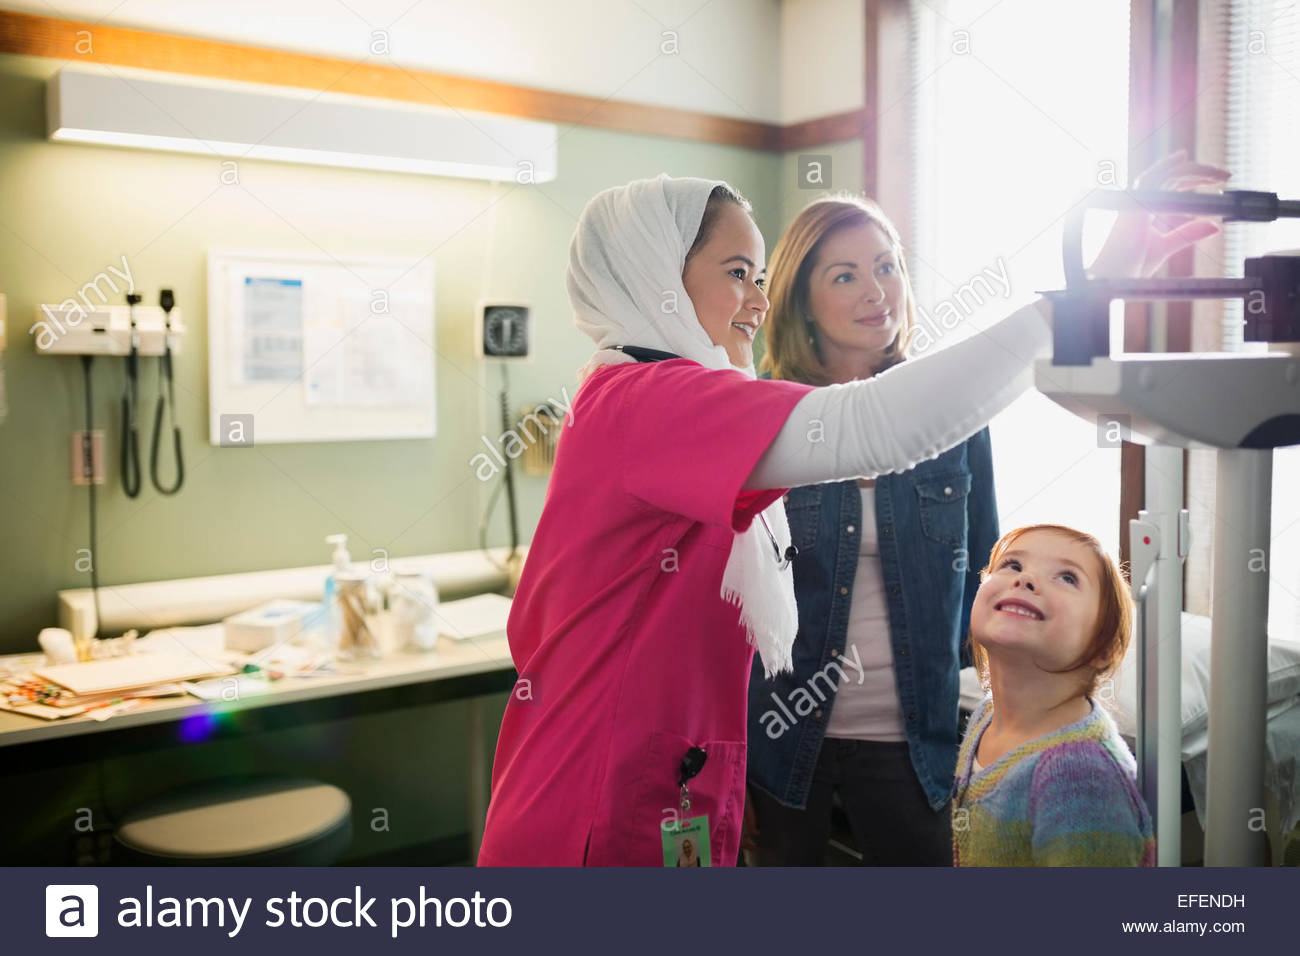 Nurse checking weight of girl in examination room - Stock Image